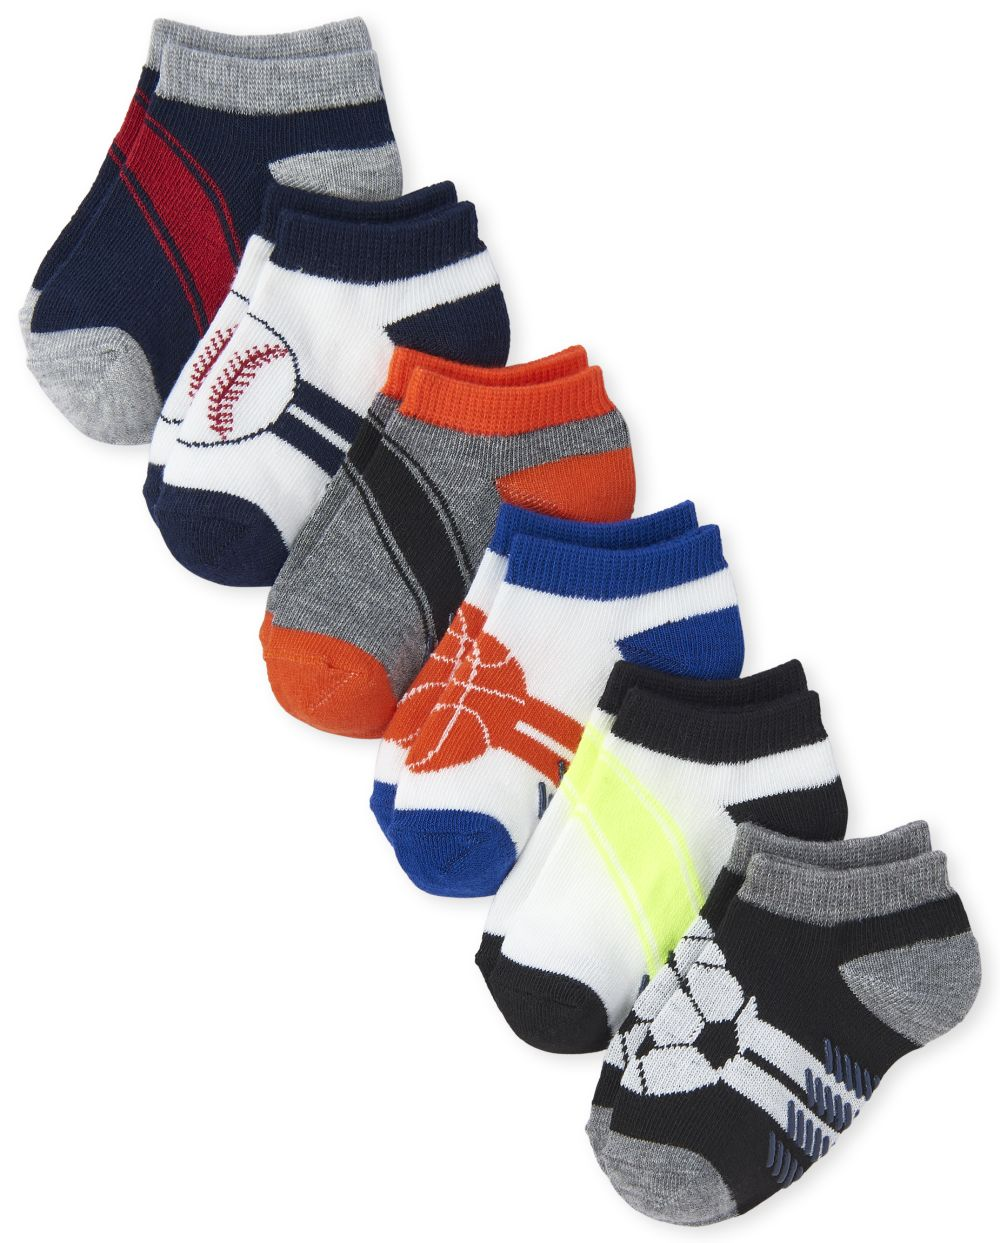 Toddler Boys Sports Ankle Socks 6-Pack